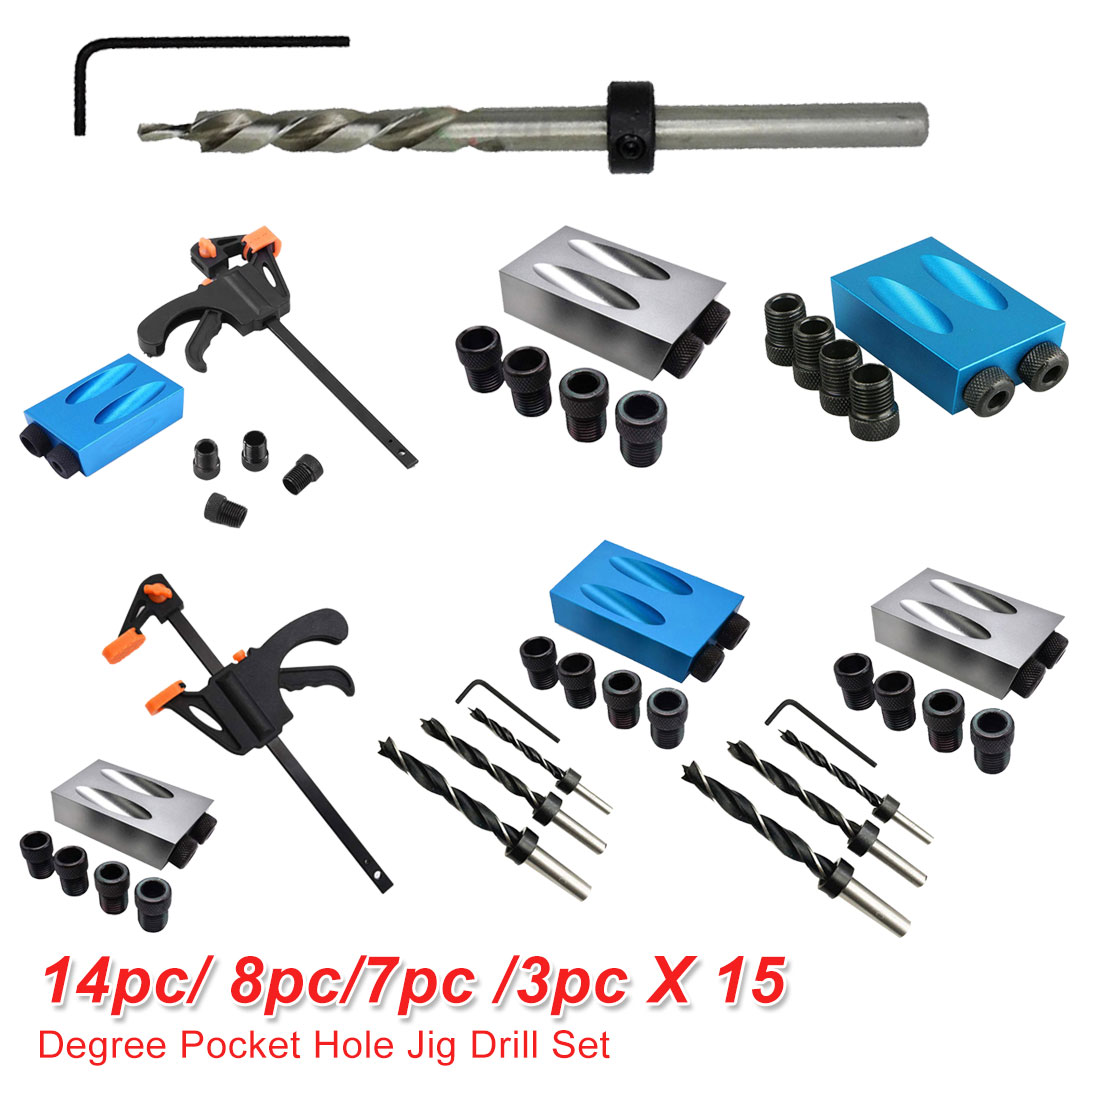 6mm 8mm 10mm Woodworking Pocket Hole Jig Angle Drill Guide Set 14pc/ 8pc/7pc /3pc Hole Puncher Locator Jig Drill For Carpentry